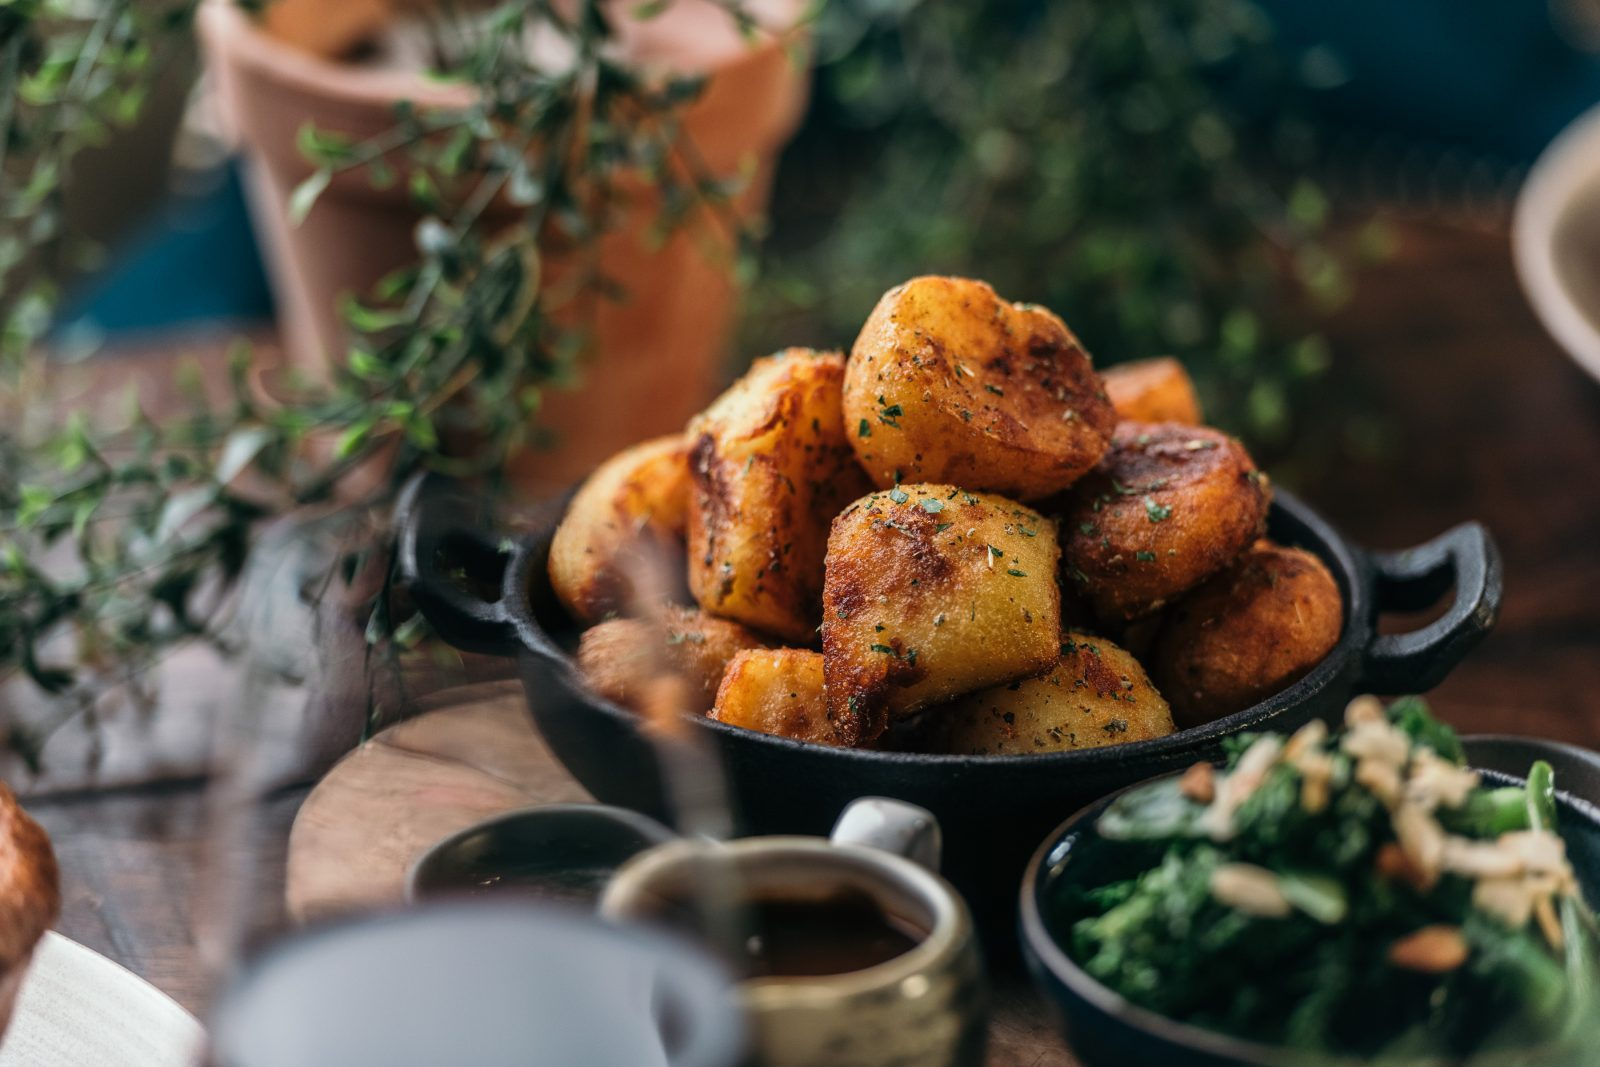 The Botanist is on the hunt for a paid roast dinner reviewer for a year, The Manc